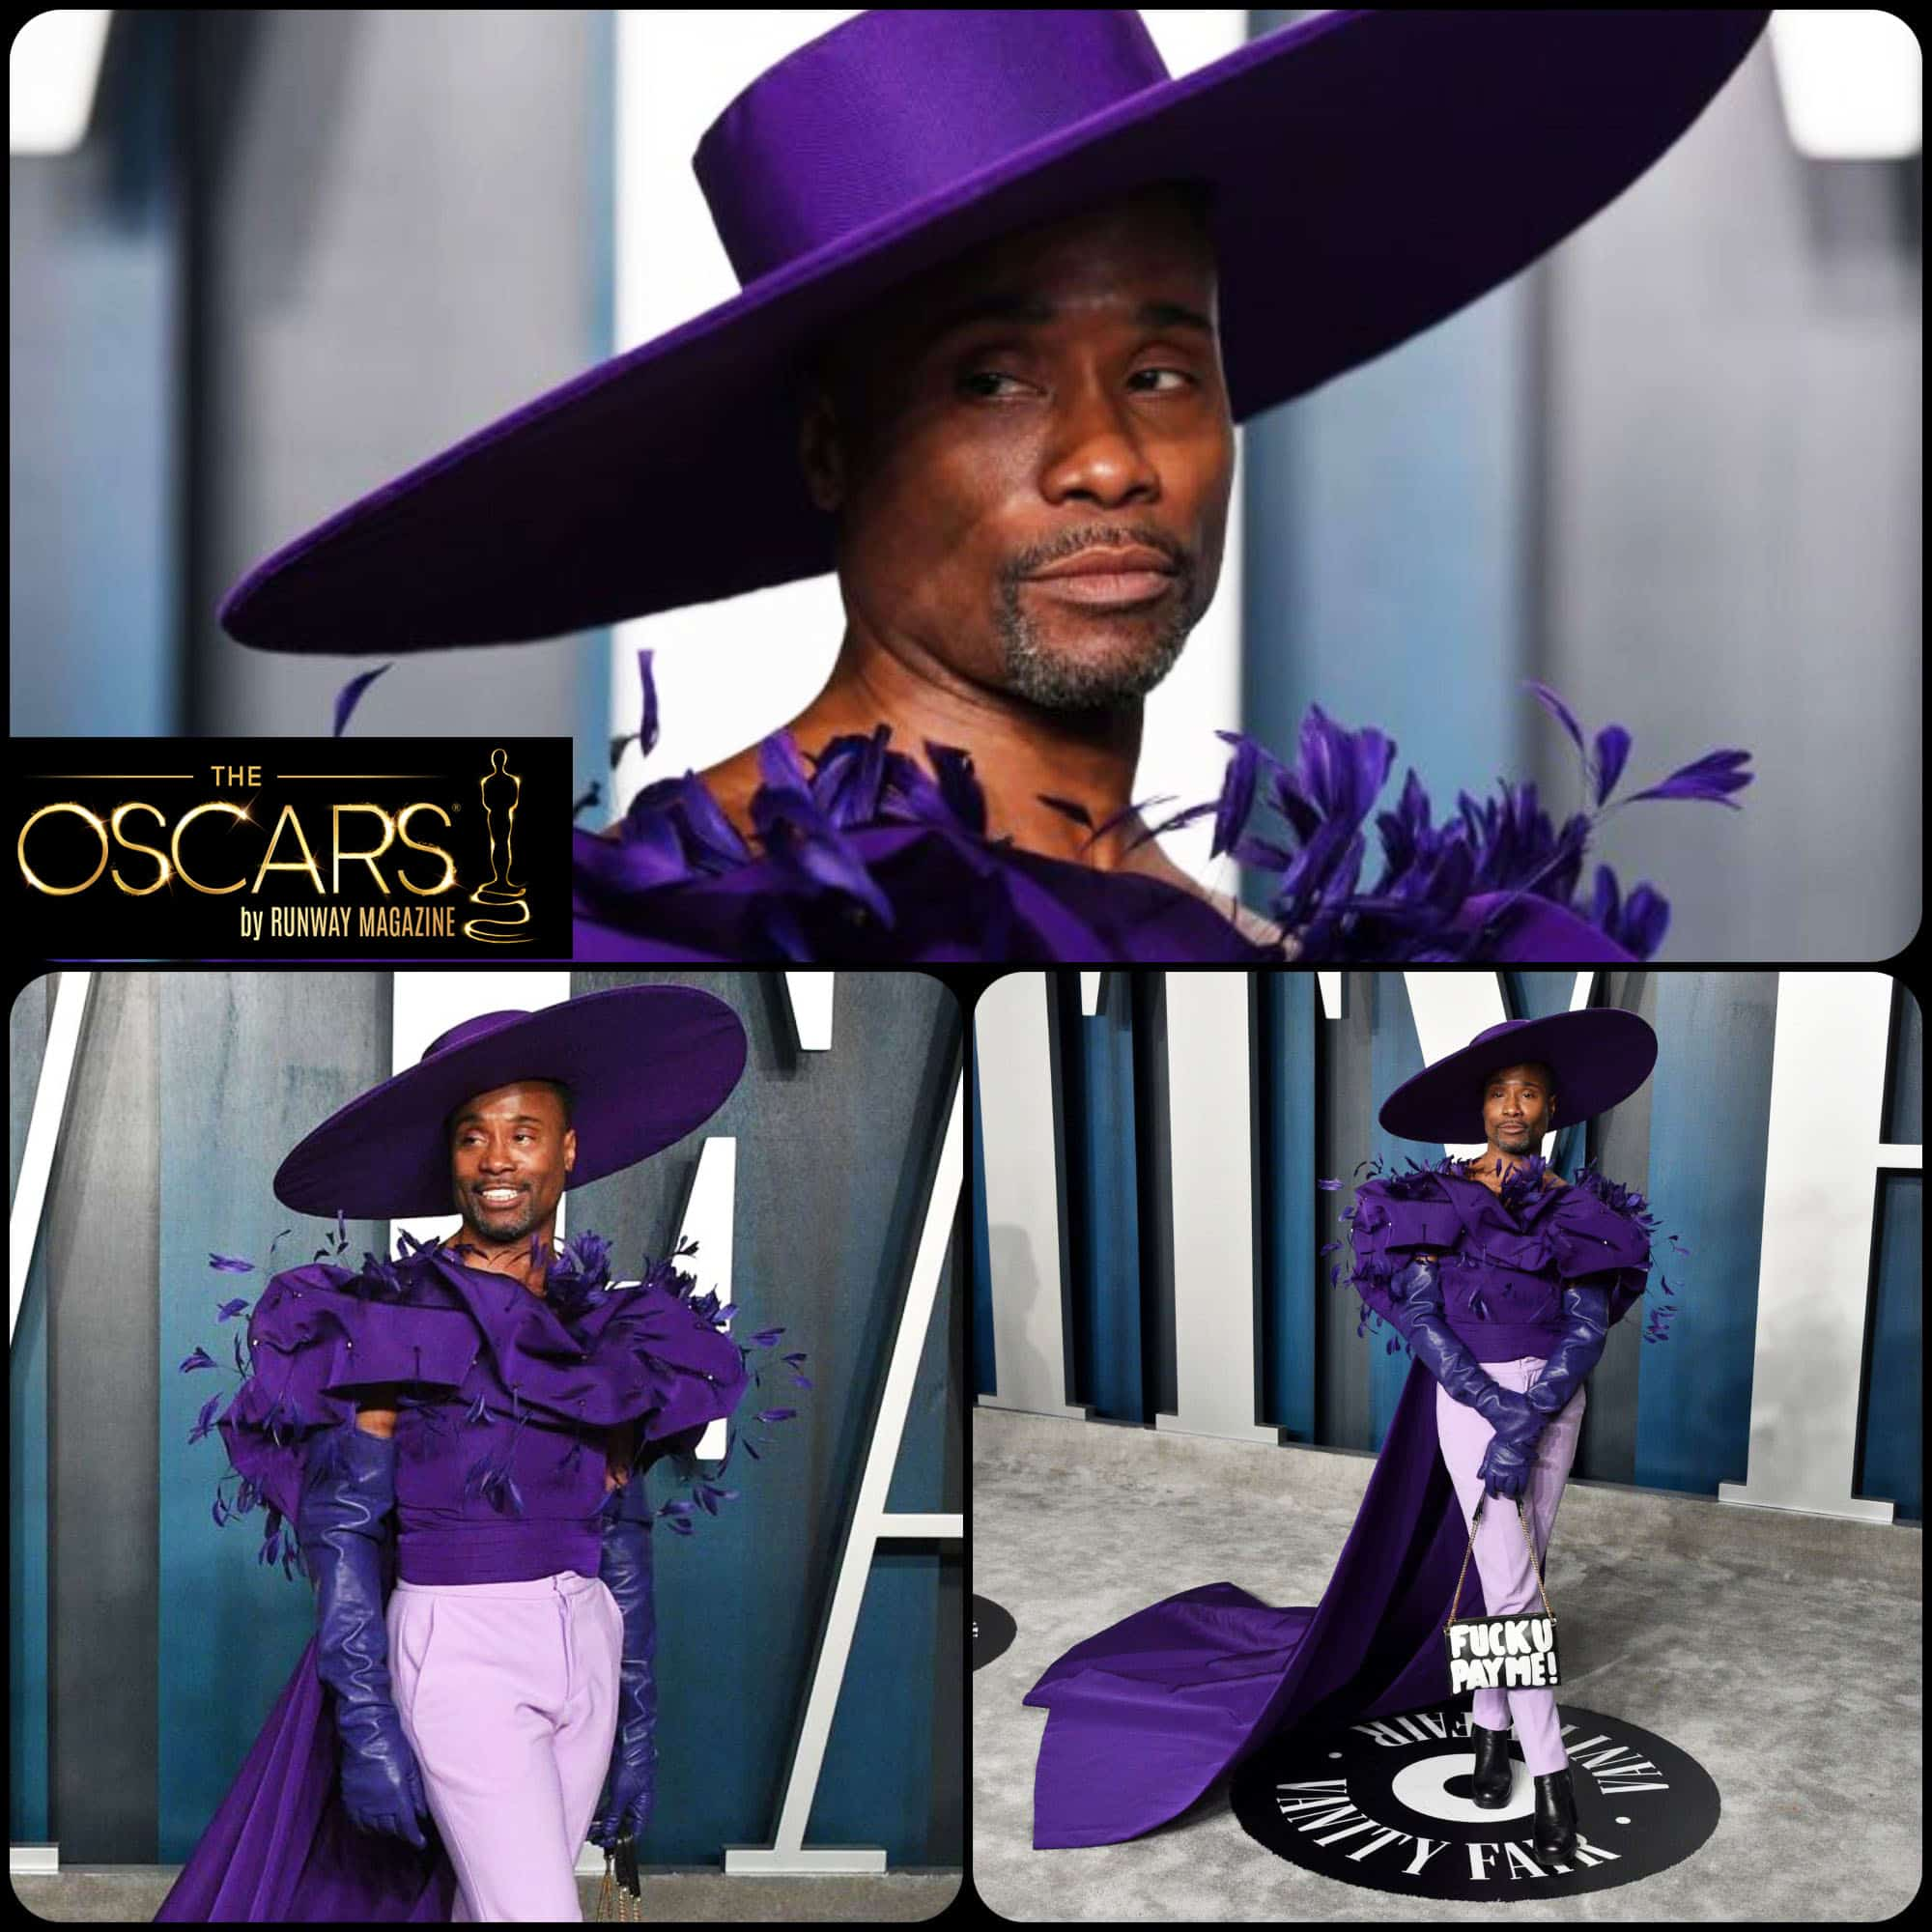 Vanity Fair Oscars 2020 party Billy Porter outfit by RUNWAY MAGAZINE